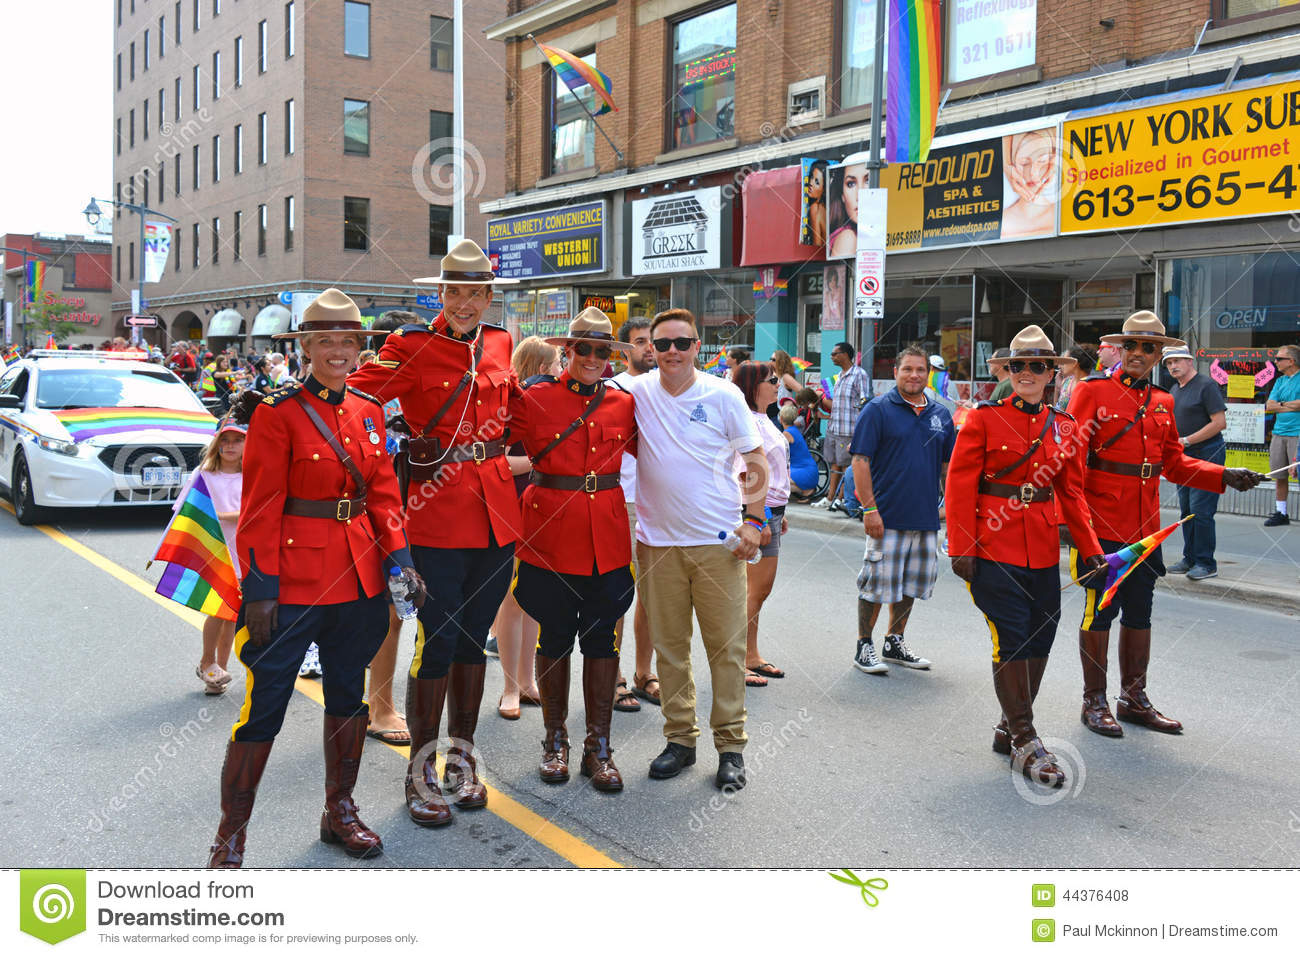 from Dominic ottawa gay tourism